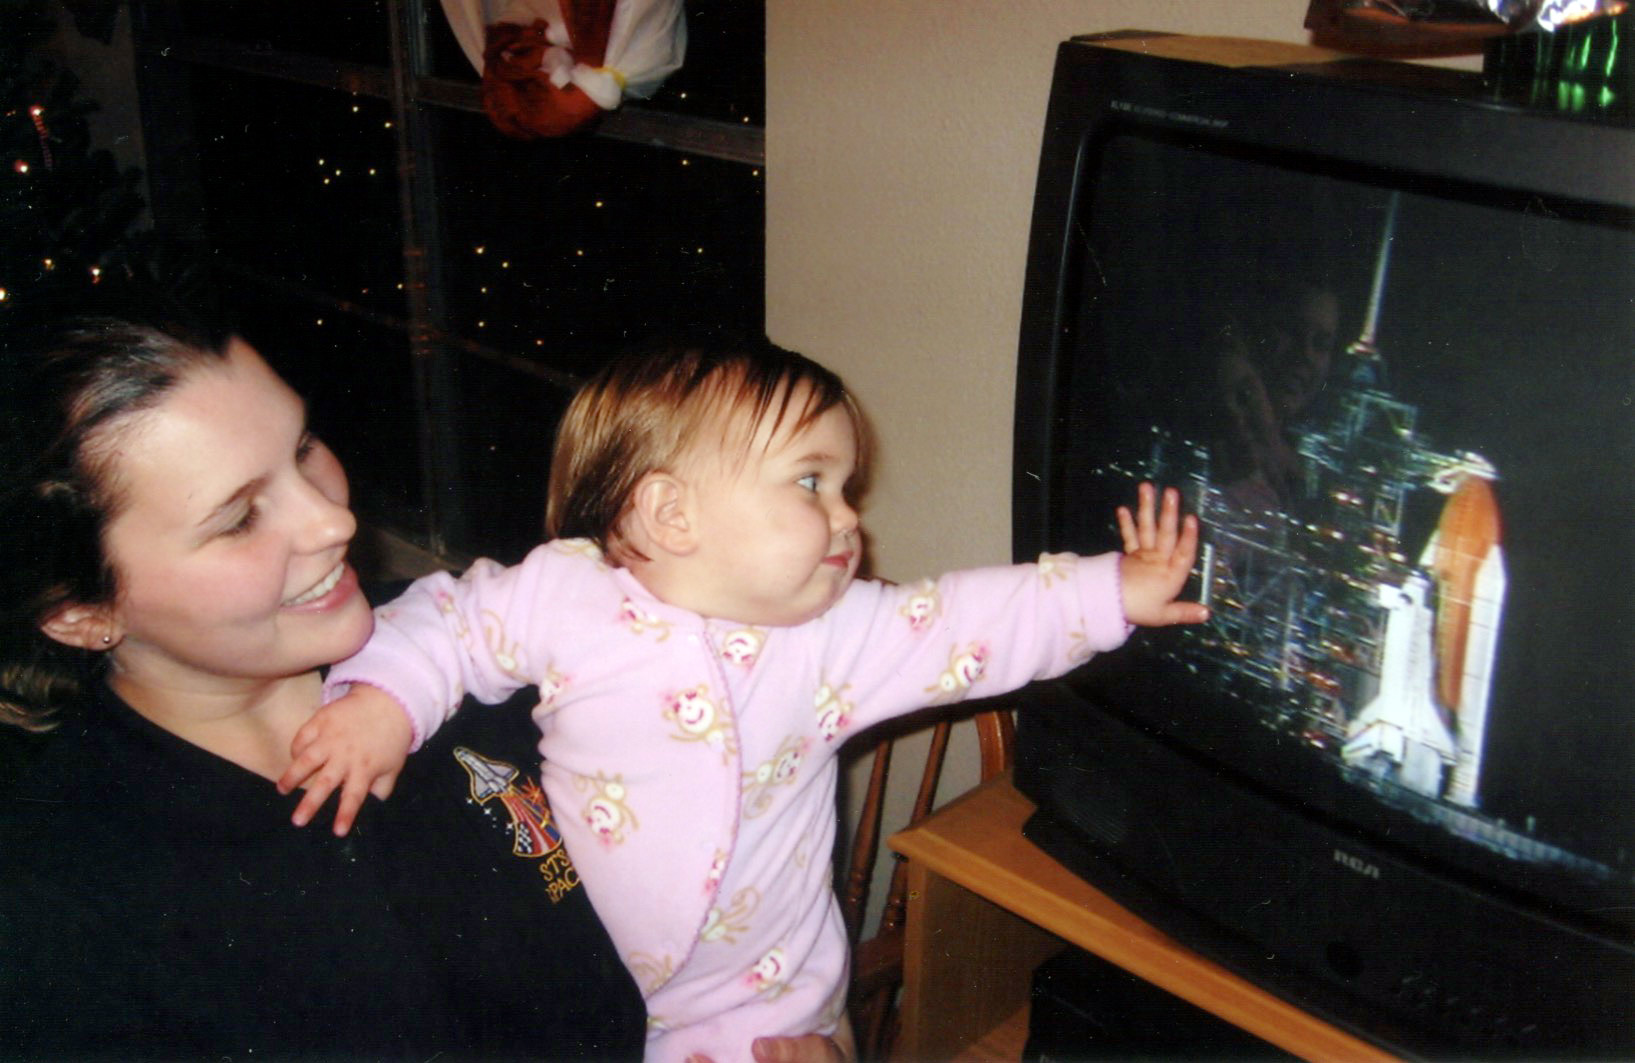 ^ During December 2006, Marie and Elliot watched the night launch of STS-116 Discovery to the ISS from their first home in Webster, Texas. This was the first shuttle mission Marie took part in while working for SpaceHab.